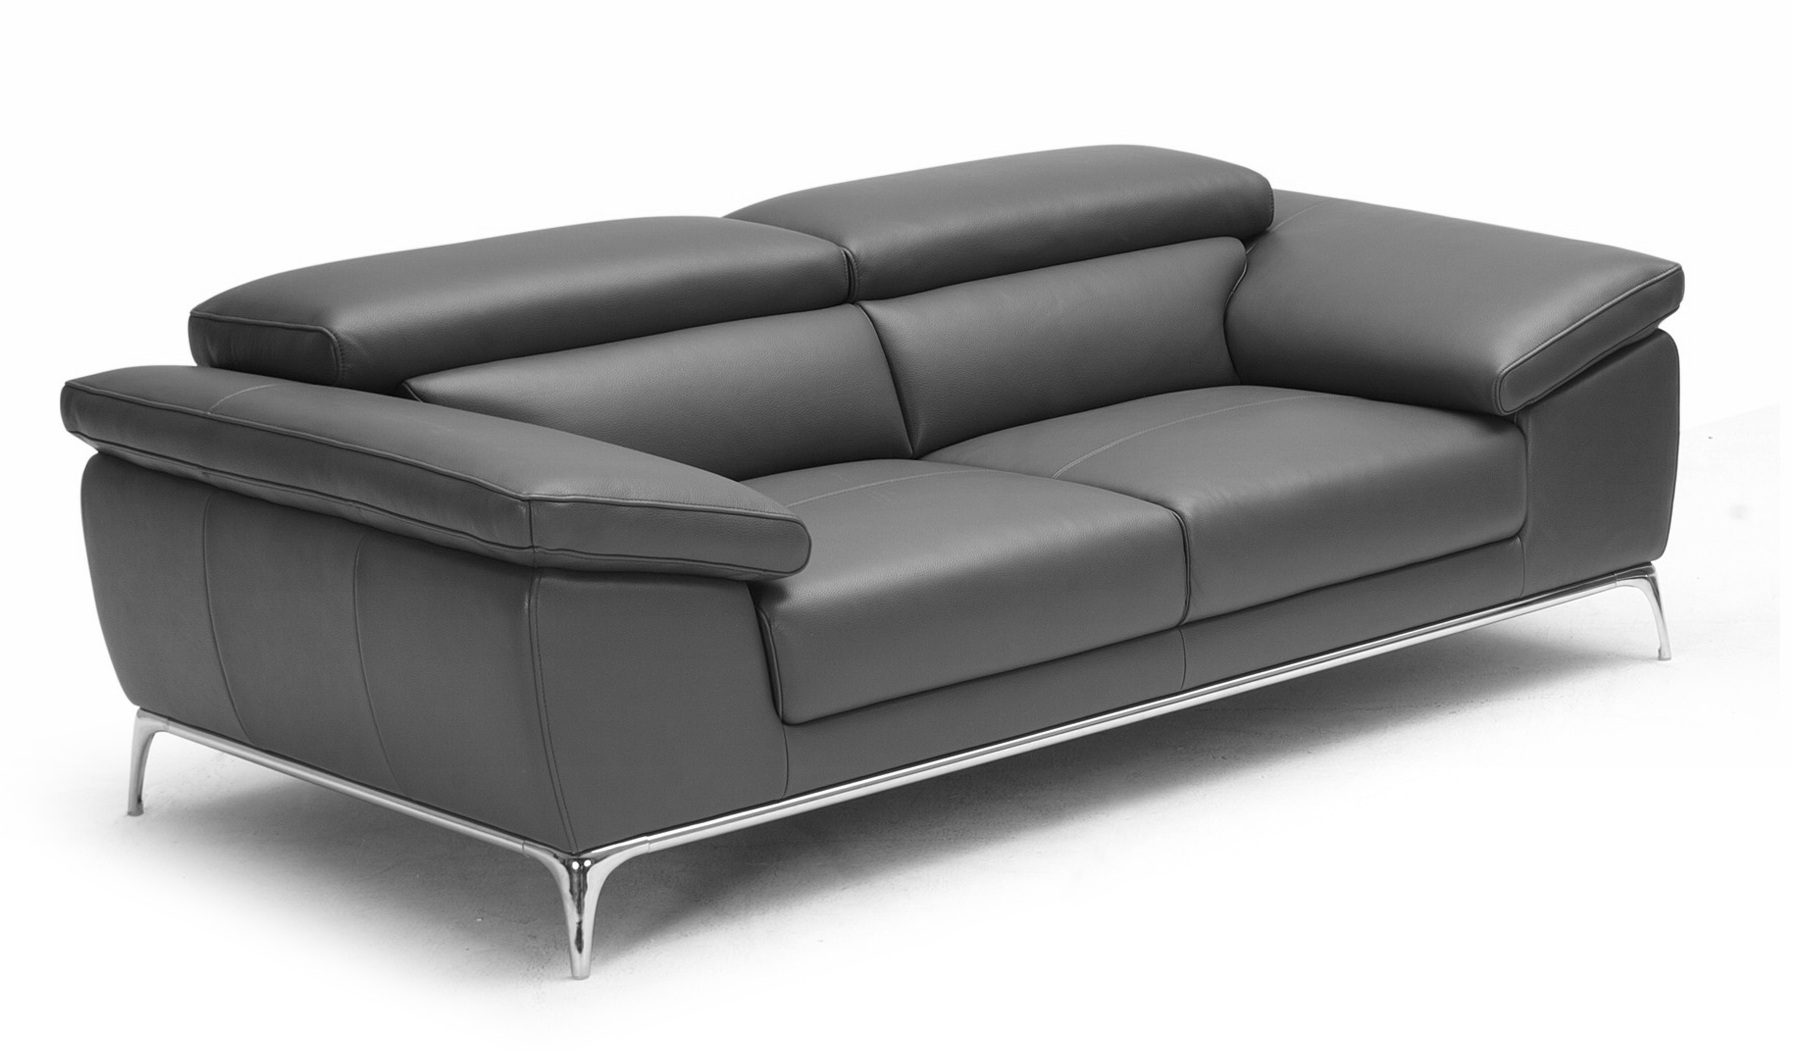 Ebony Plush Two Seater Office Sofa In Leather: Boss's Cabin